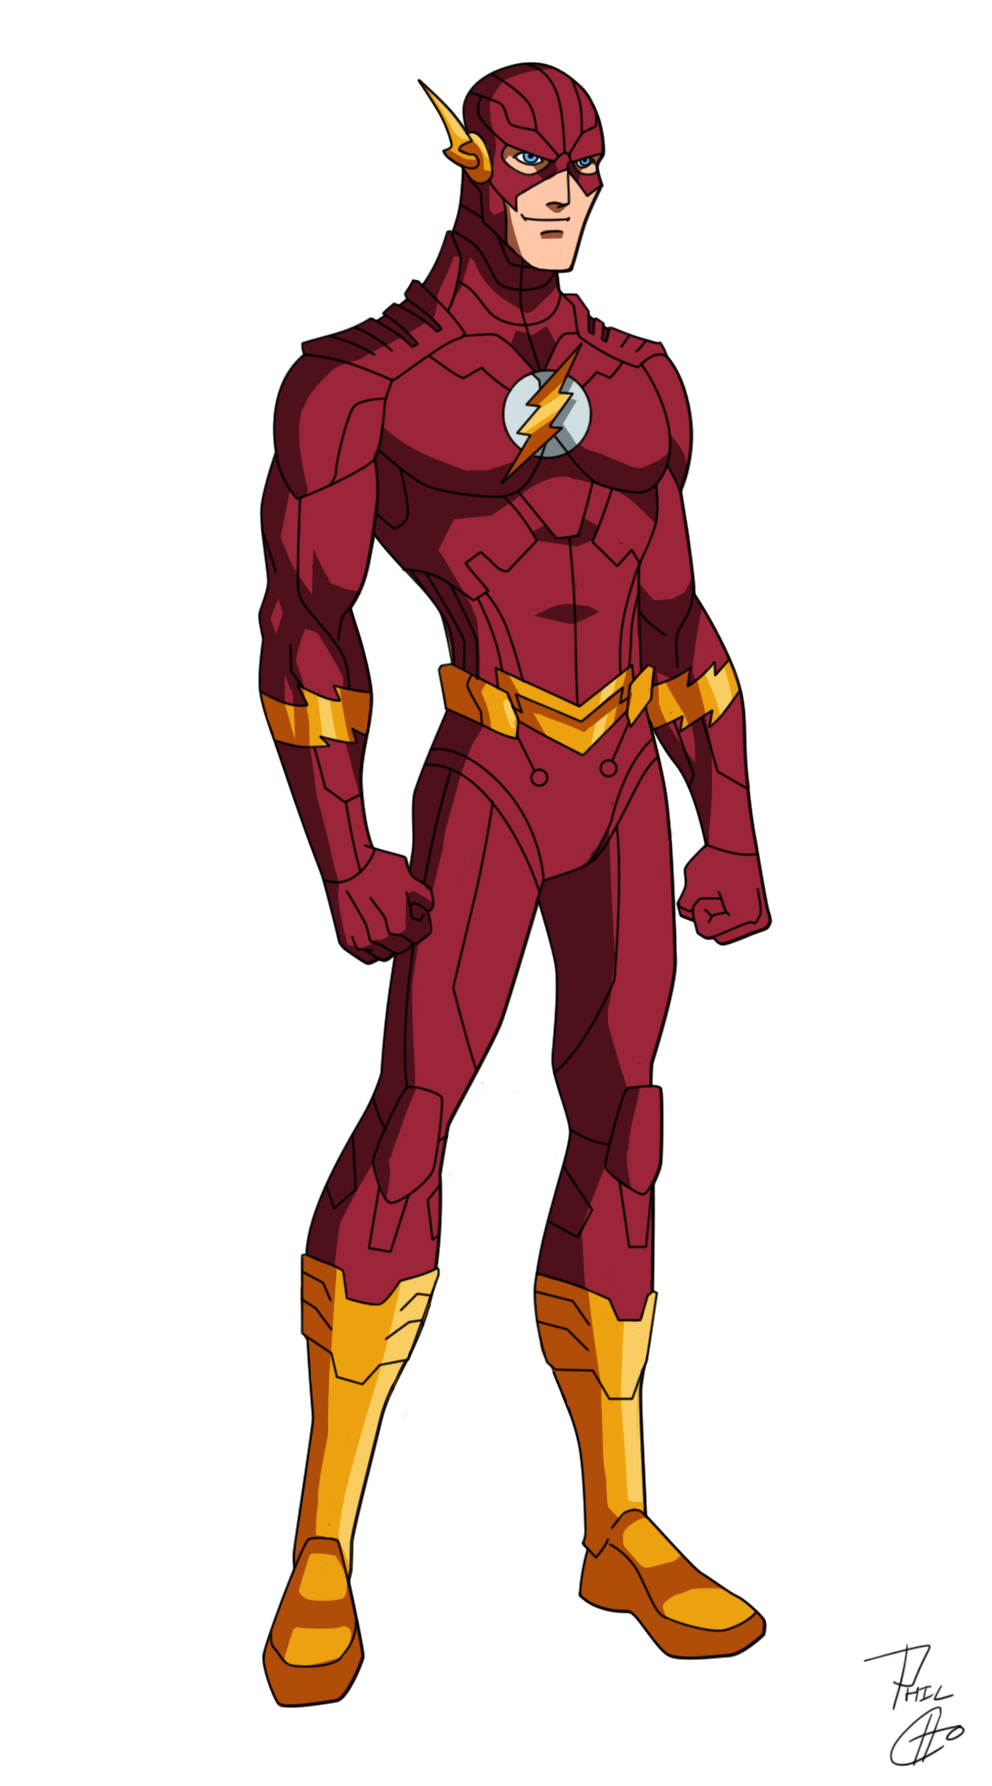 The flash injustice by phil cho on deviantart - Super hero flash ...